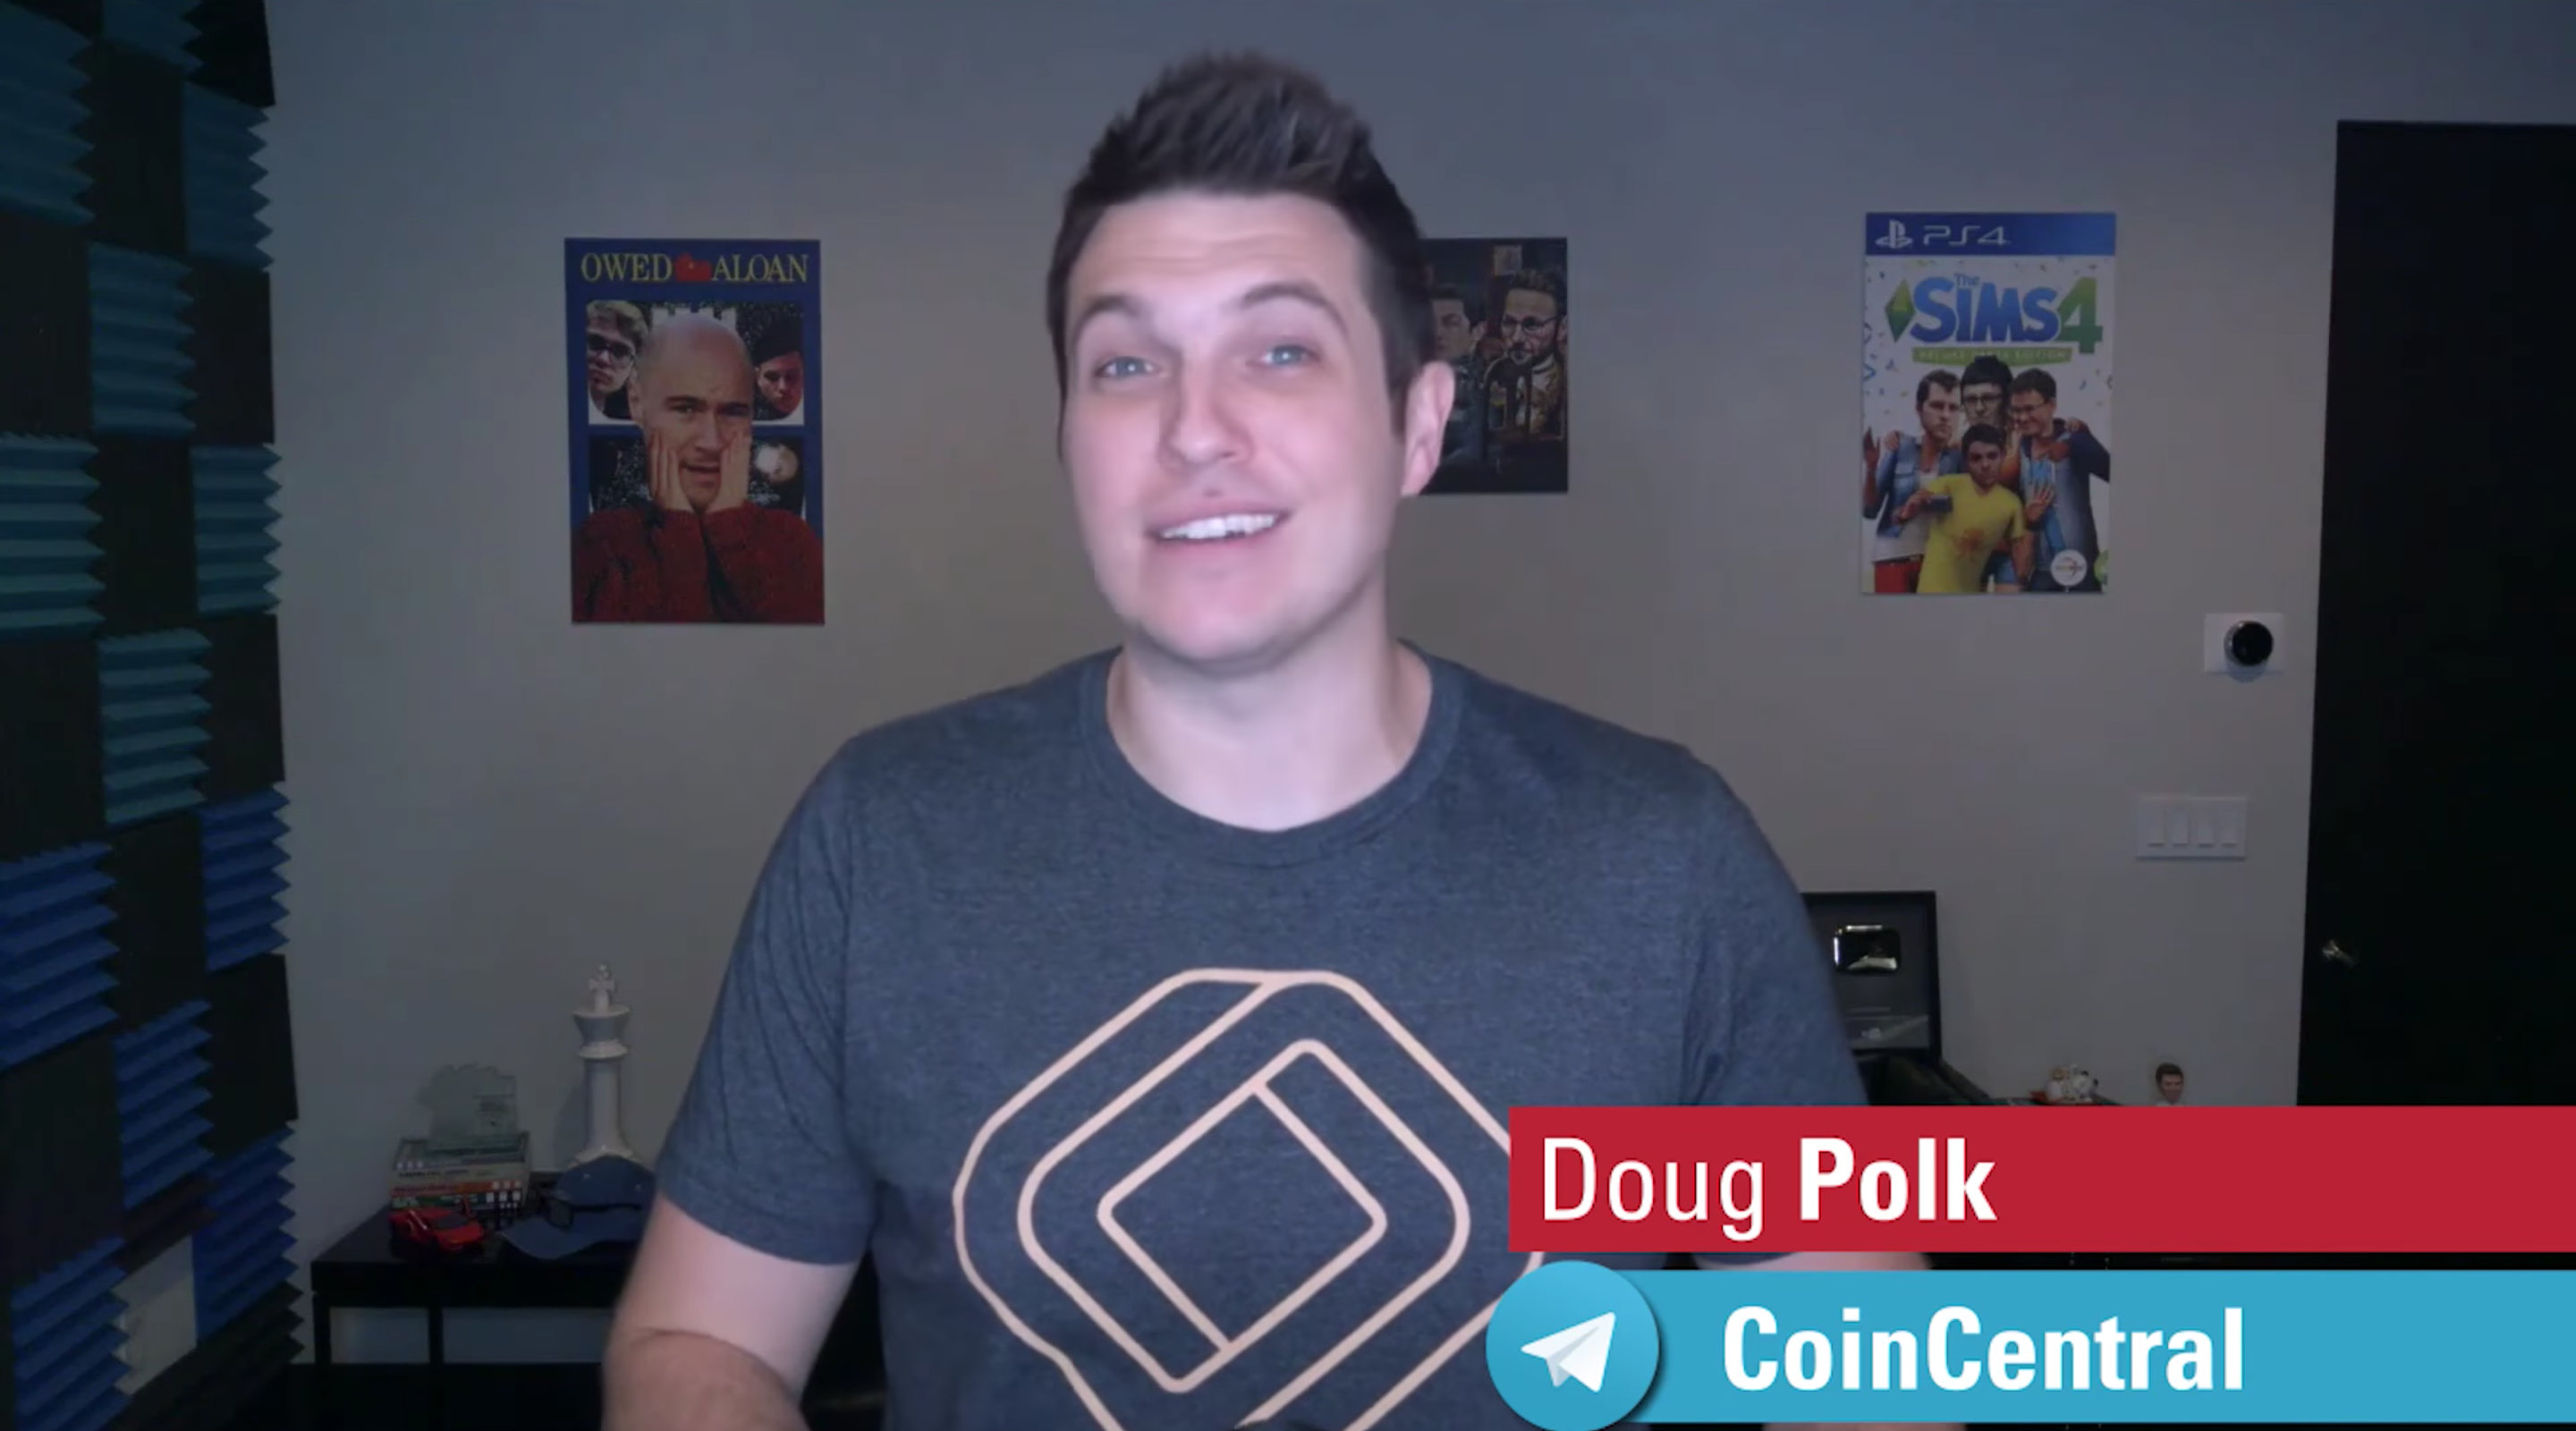 Doug Polk Takes on 'Mainstream' News Topics with New YouTube Channel